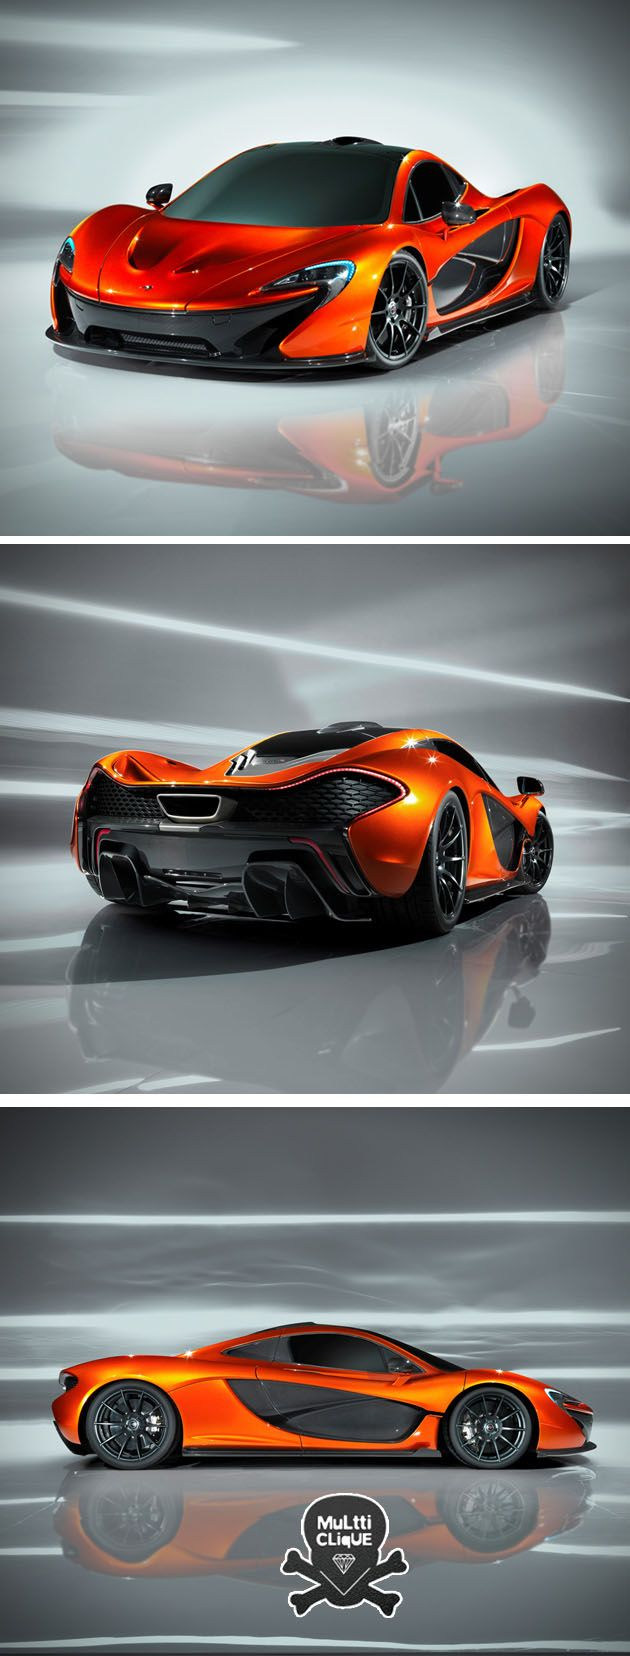 McLaren P1 $1.15m http://cars.mclaren.com/home/models_link/McLAREN%20P1/introduction.html